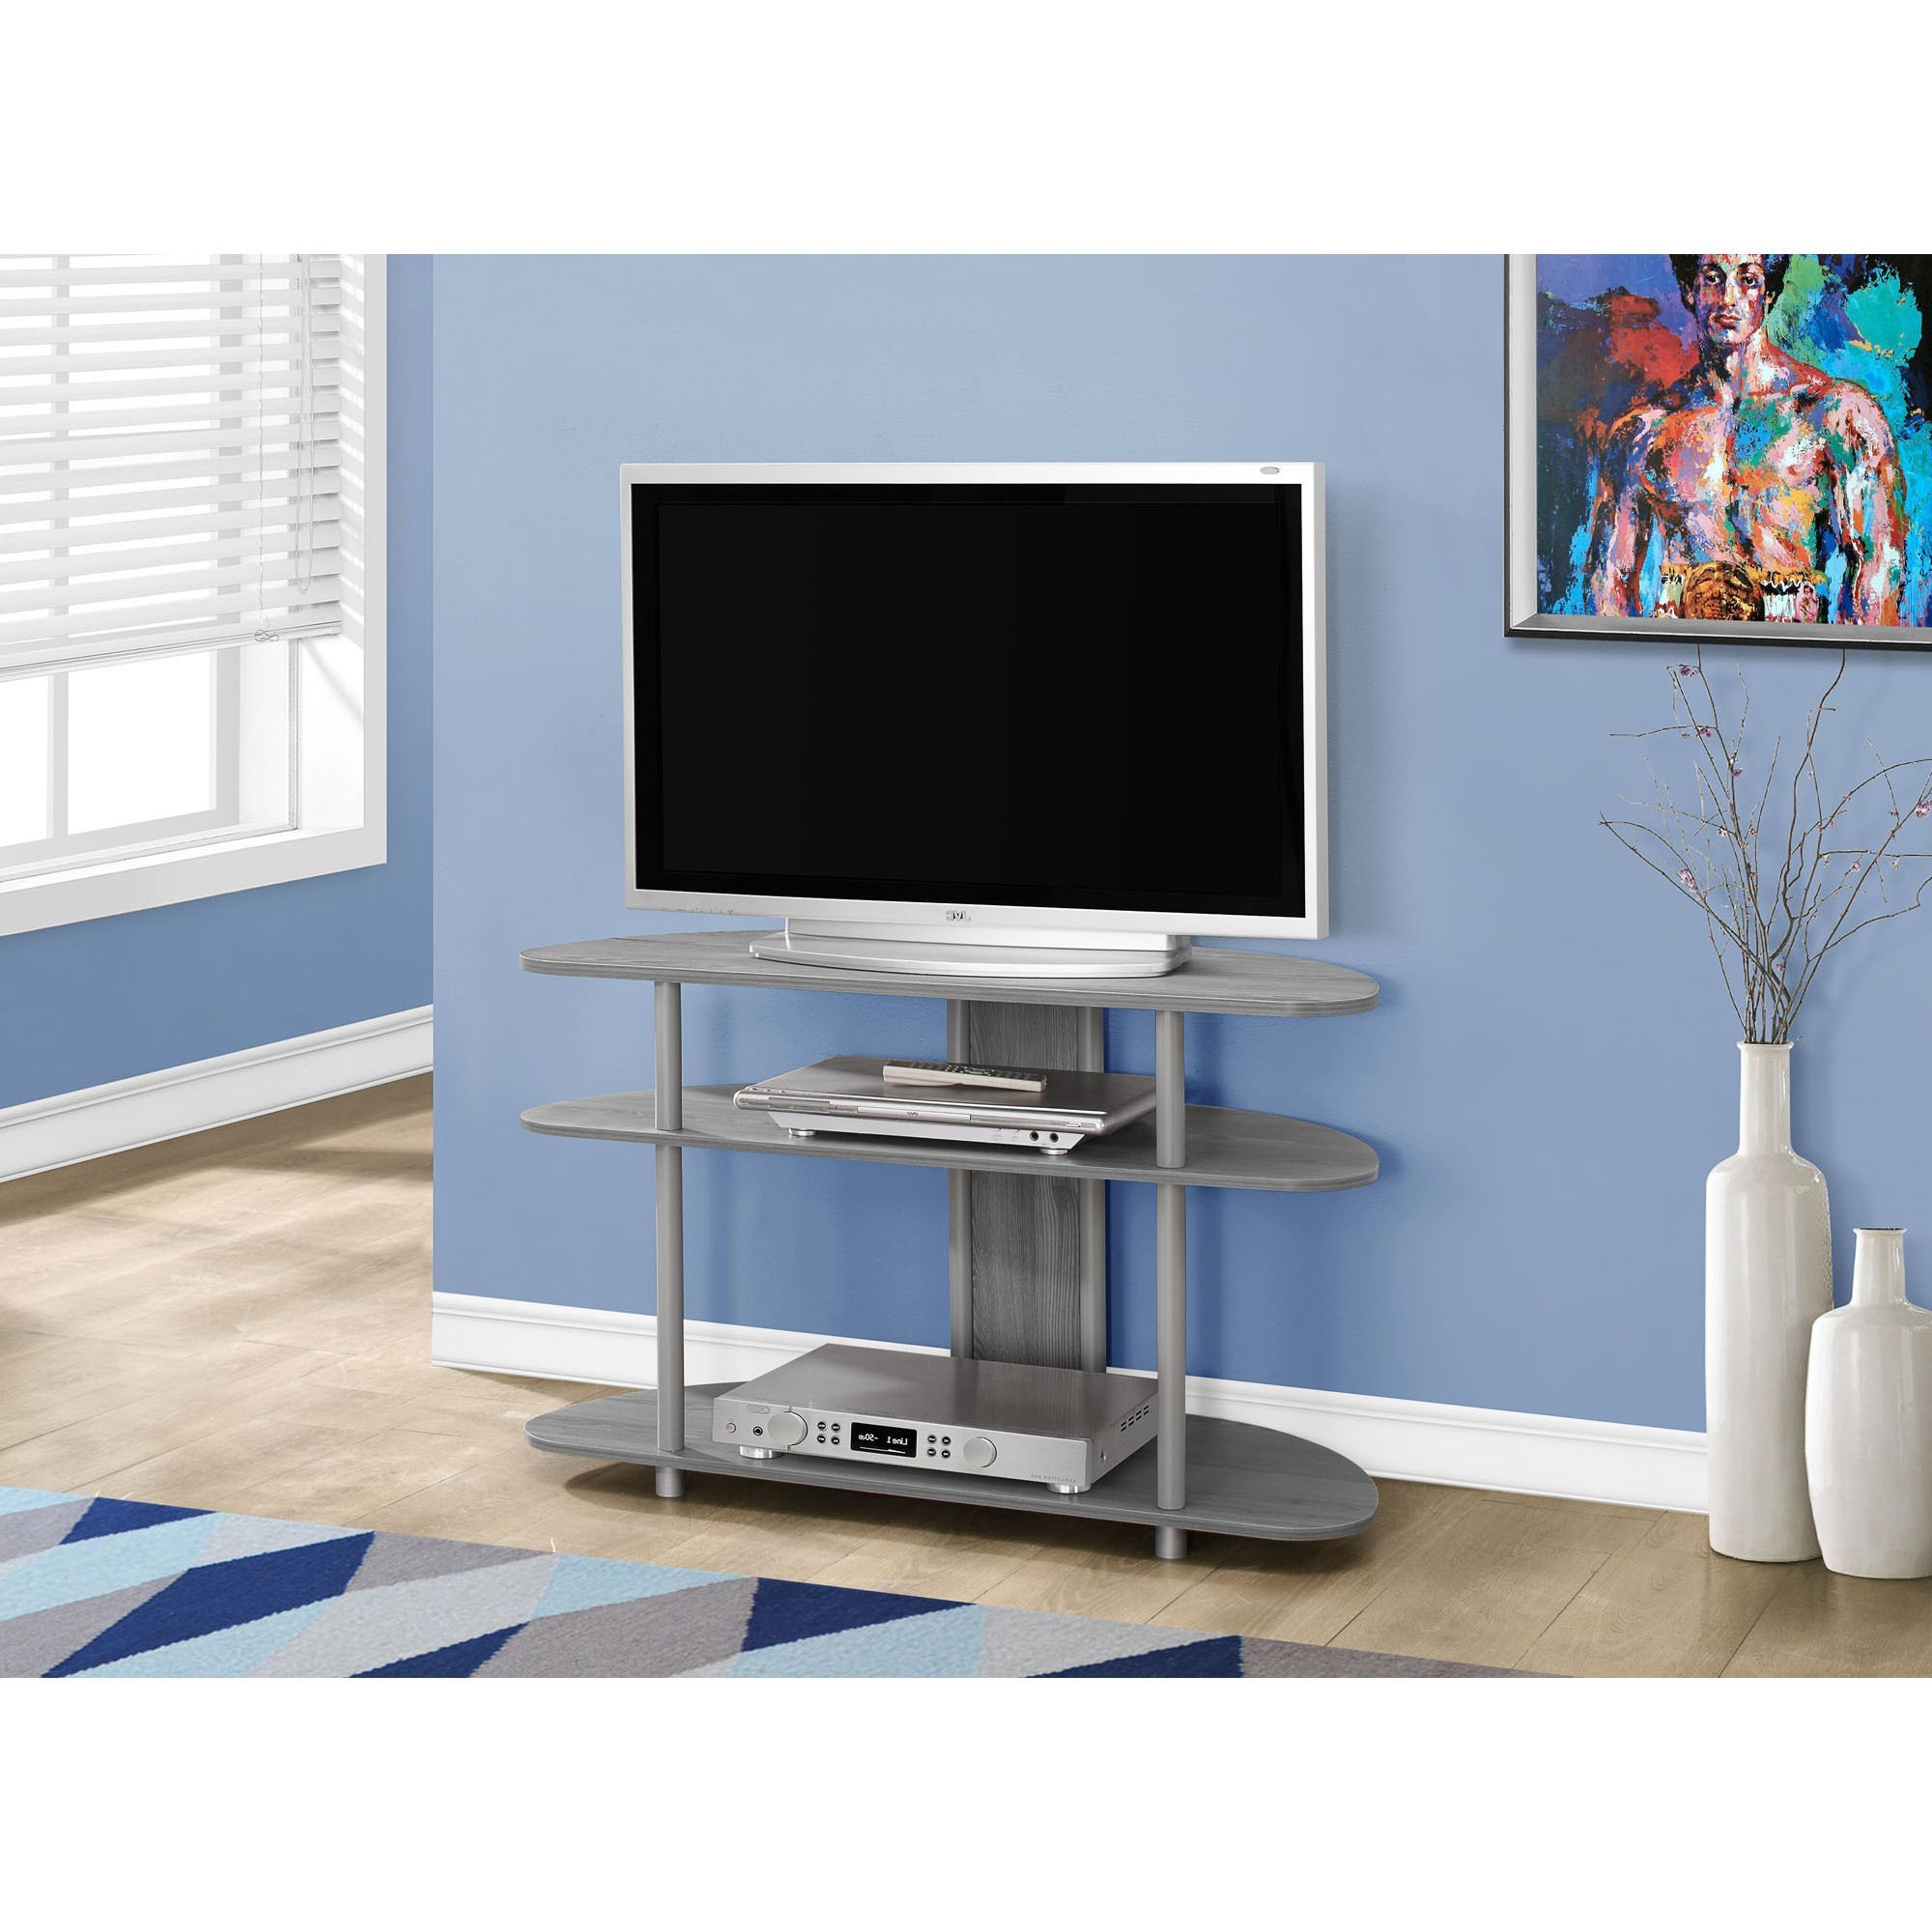 40 Inch Corner Tv Stands Pertaining To Trendy Perfect For Small Spaces, This Slick Grey Corner Tv Stand Is Angled (View 17 of 20)